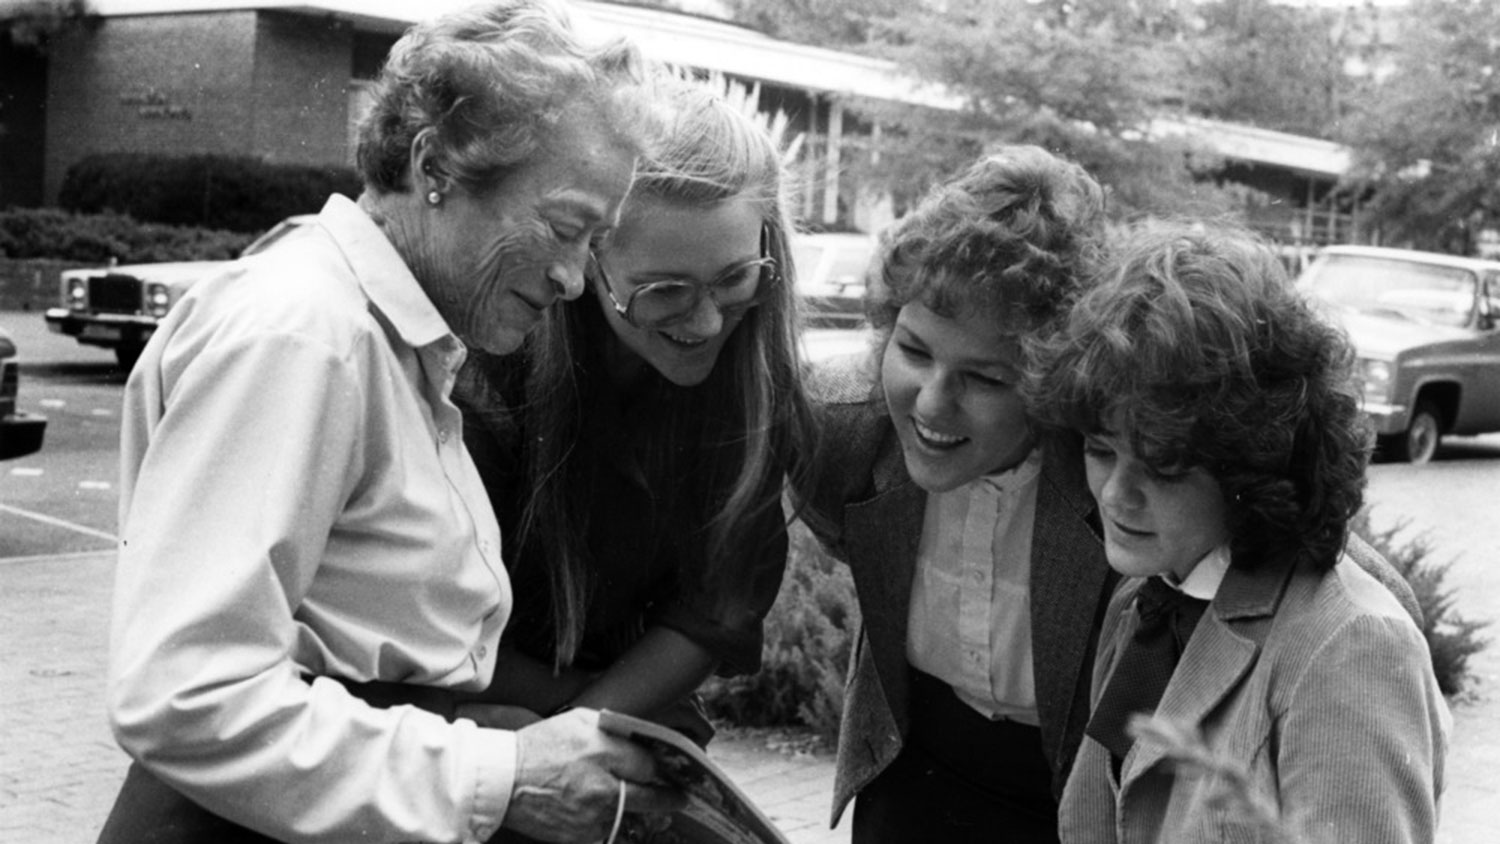 Katherine Stinson, the first female graduate of the College of Engineering, with students on campus (circa 1970s).